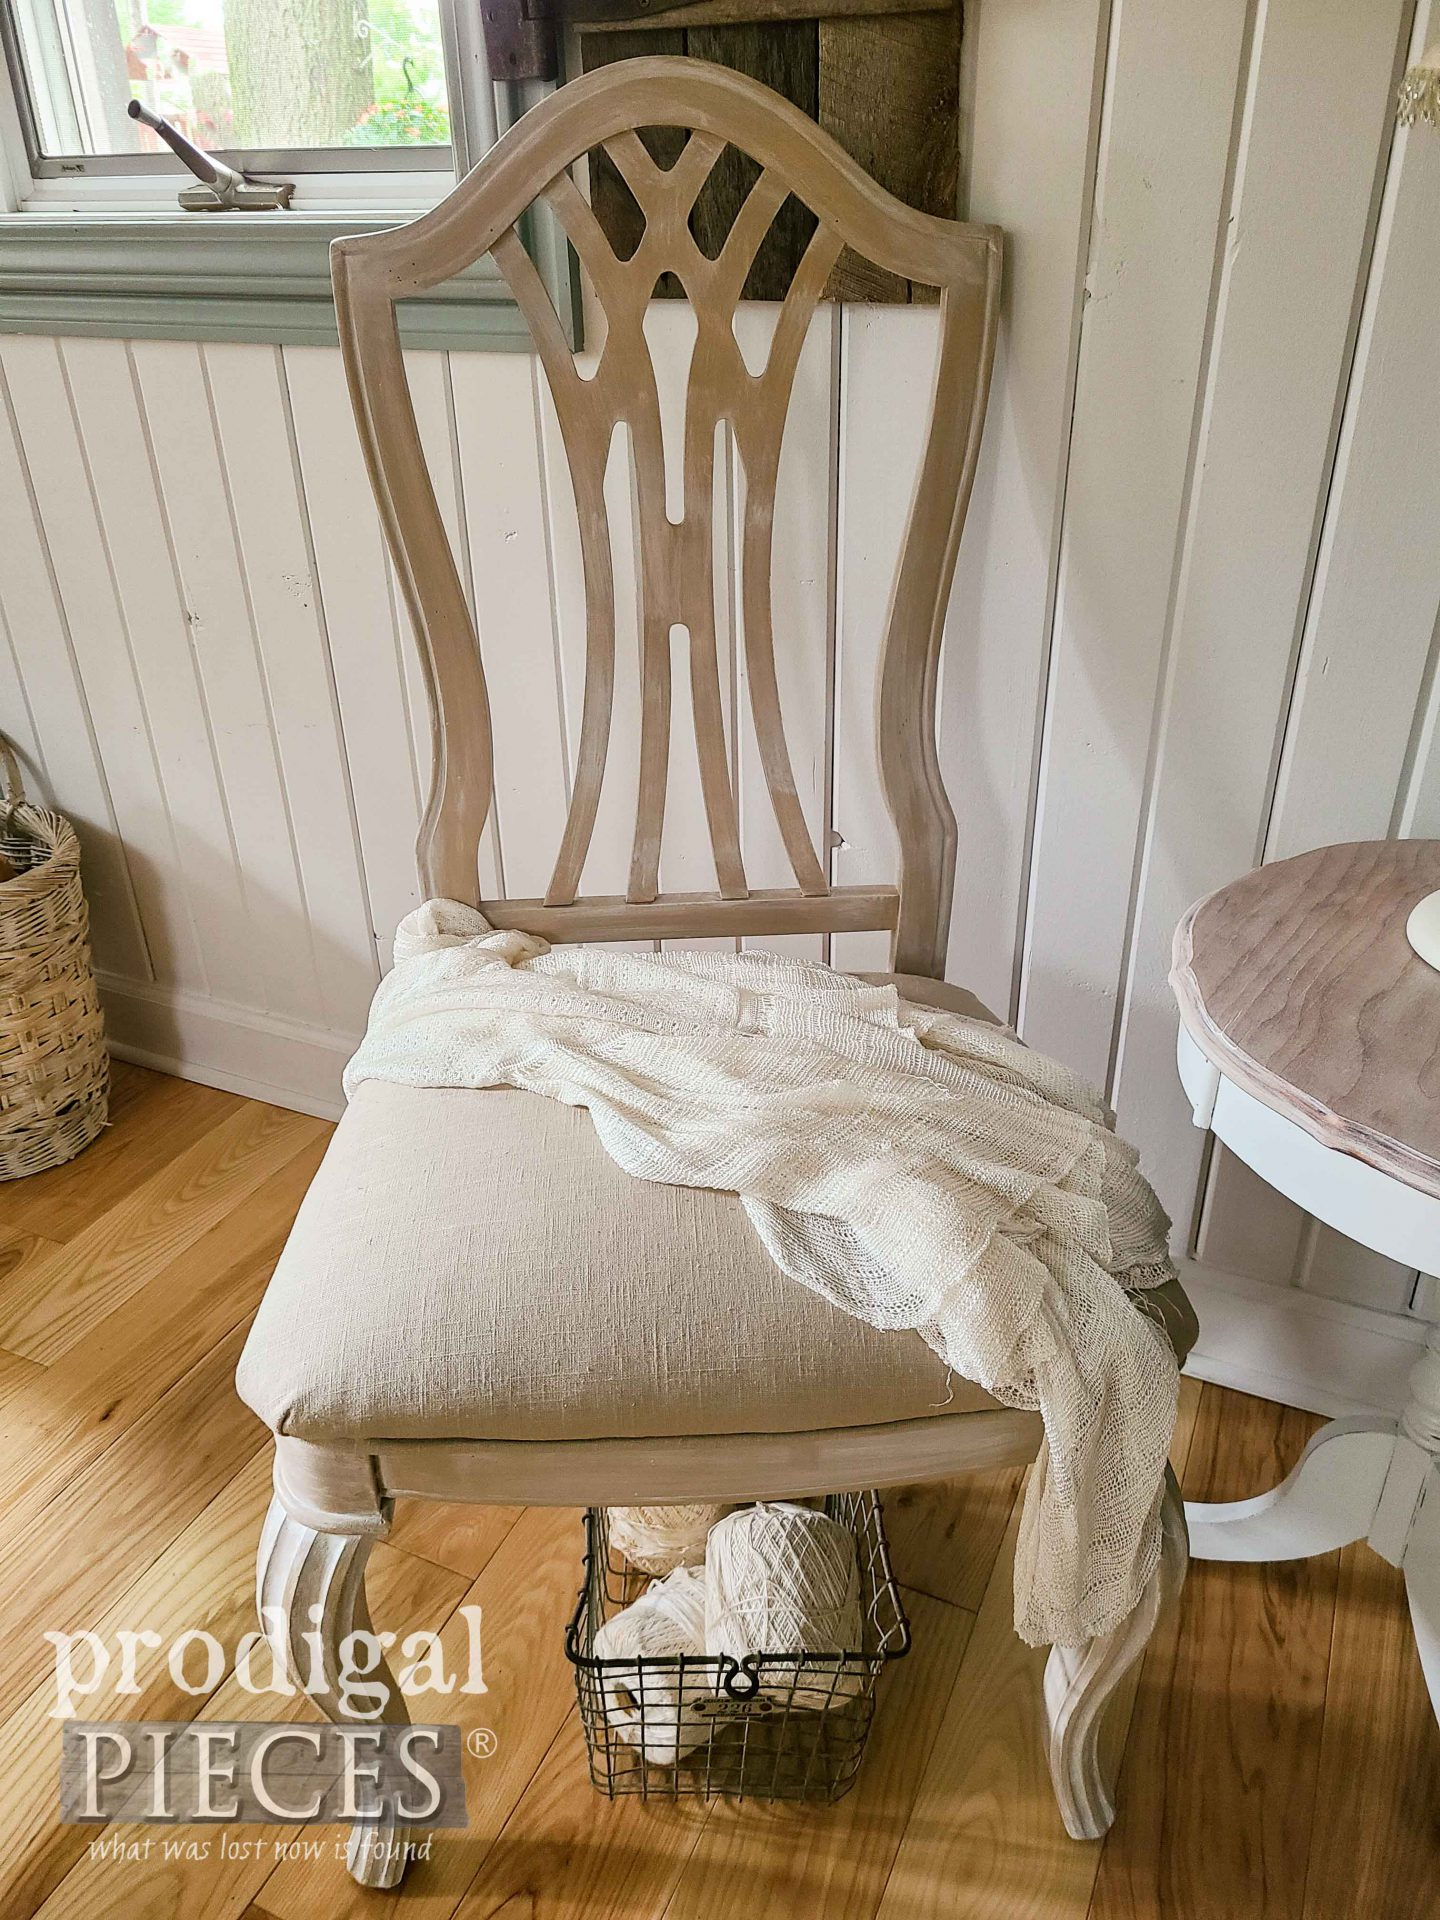 Farmhouse Chic Chair with Linen Upholstery by Larissa of Prodigal Pieces | prodigalpieces.com #prodigalpieces #vintage #furniture #linen #home #homedecor